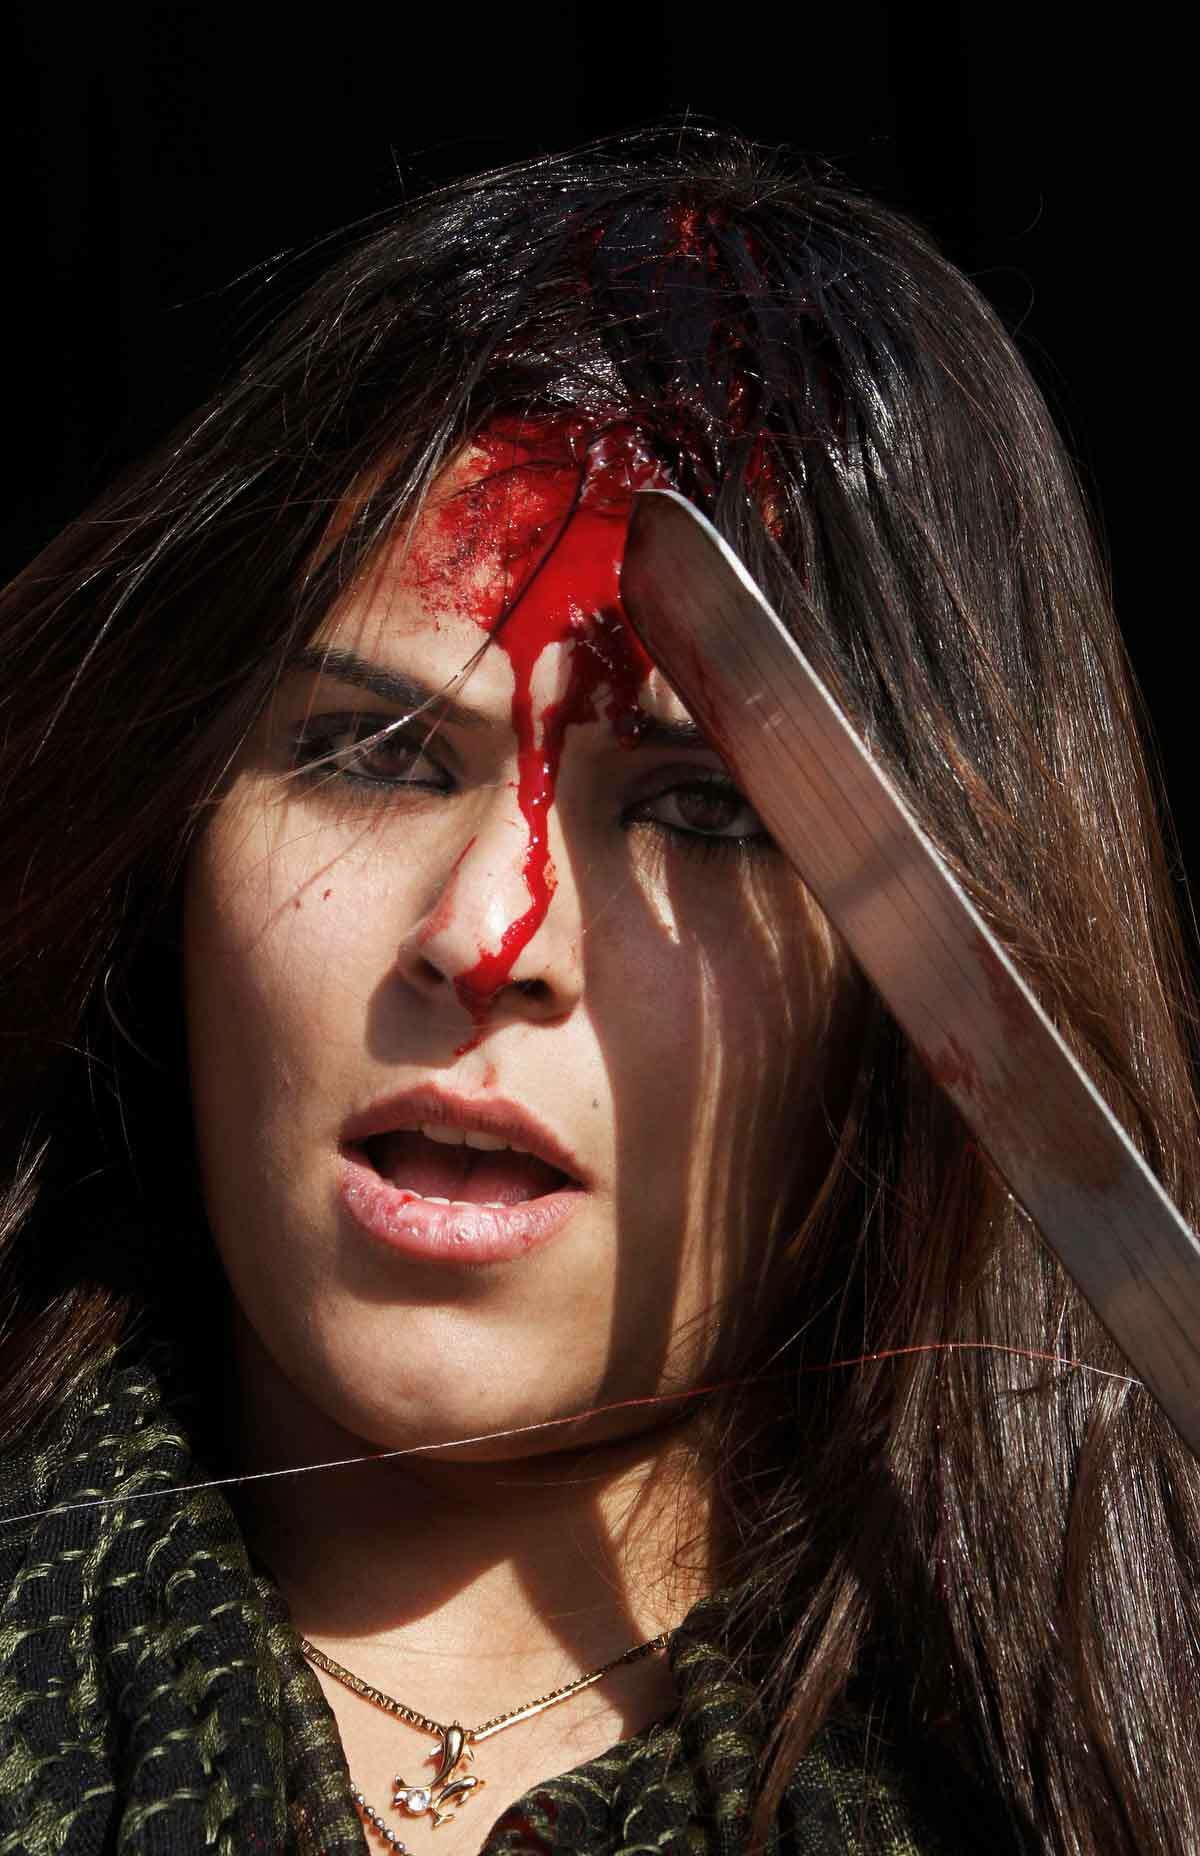 A Lebanese Shiite woman, bleeds from self inflicted wounds during Ashoura day in the southern market town of Nabatiyeh, Lebanon, Sunday Nov. 25, 2012. Ashoura day is the remembrance of the 680 A.D. battle in which their saint and grandson of Islam's prophet Muhammad, Hussein, was killed by rivals cementing the split in Islam between Shiites and Sunnis. (AP Photo/Mohammed Zaatari)